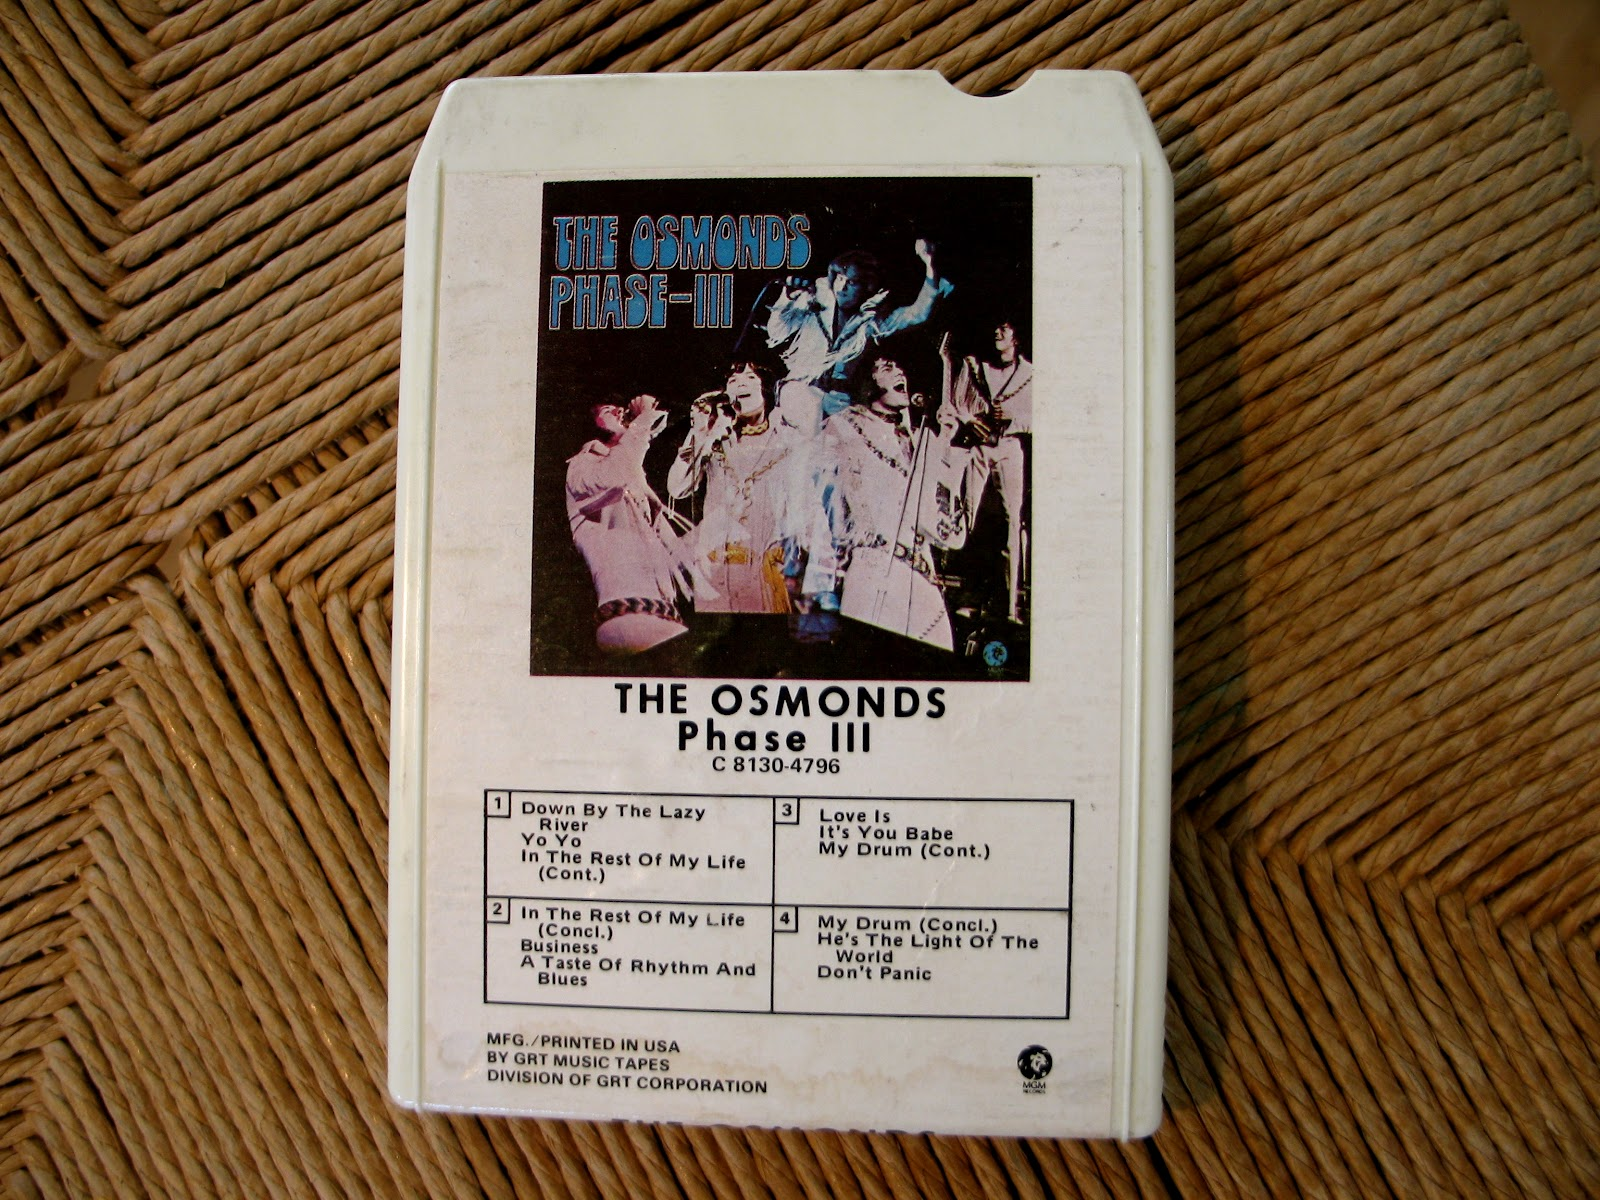 tonette time remember your track iphone case from  the osmonds phase iii 8 track iphone case by bruce tribbensee